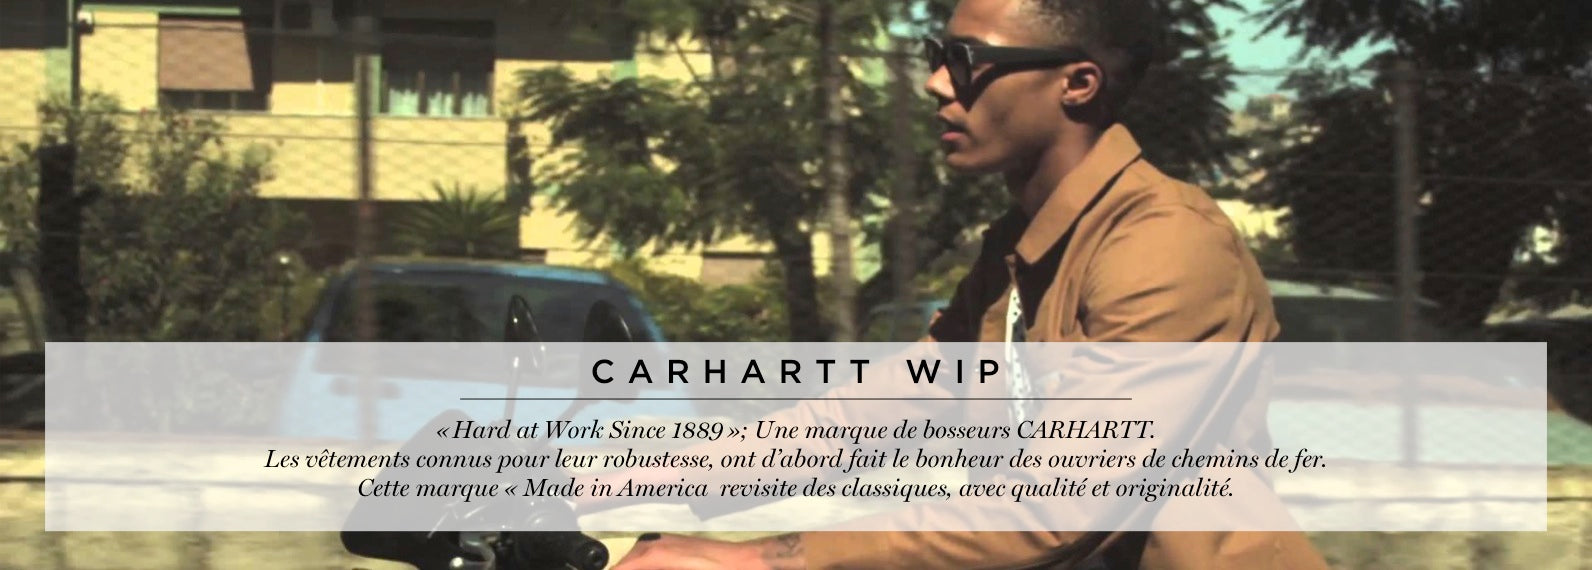 collection carhartt wip homme versailles